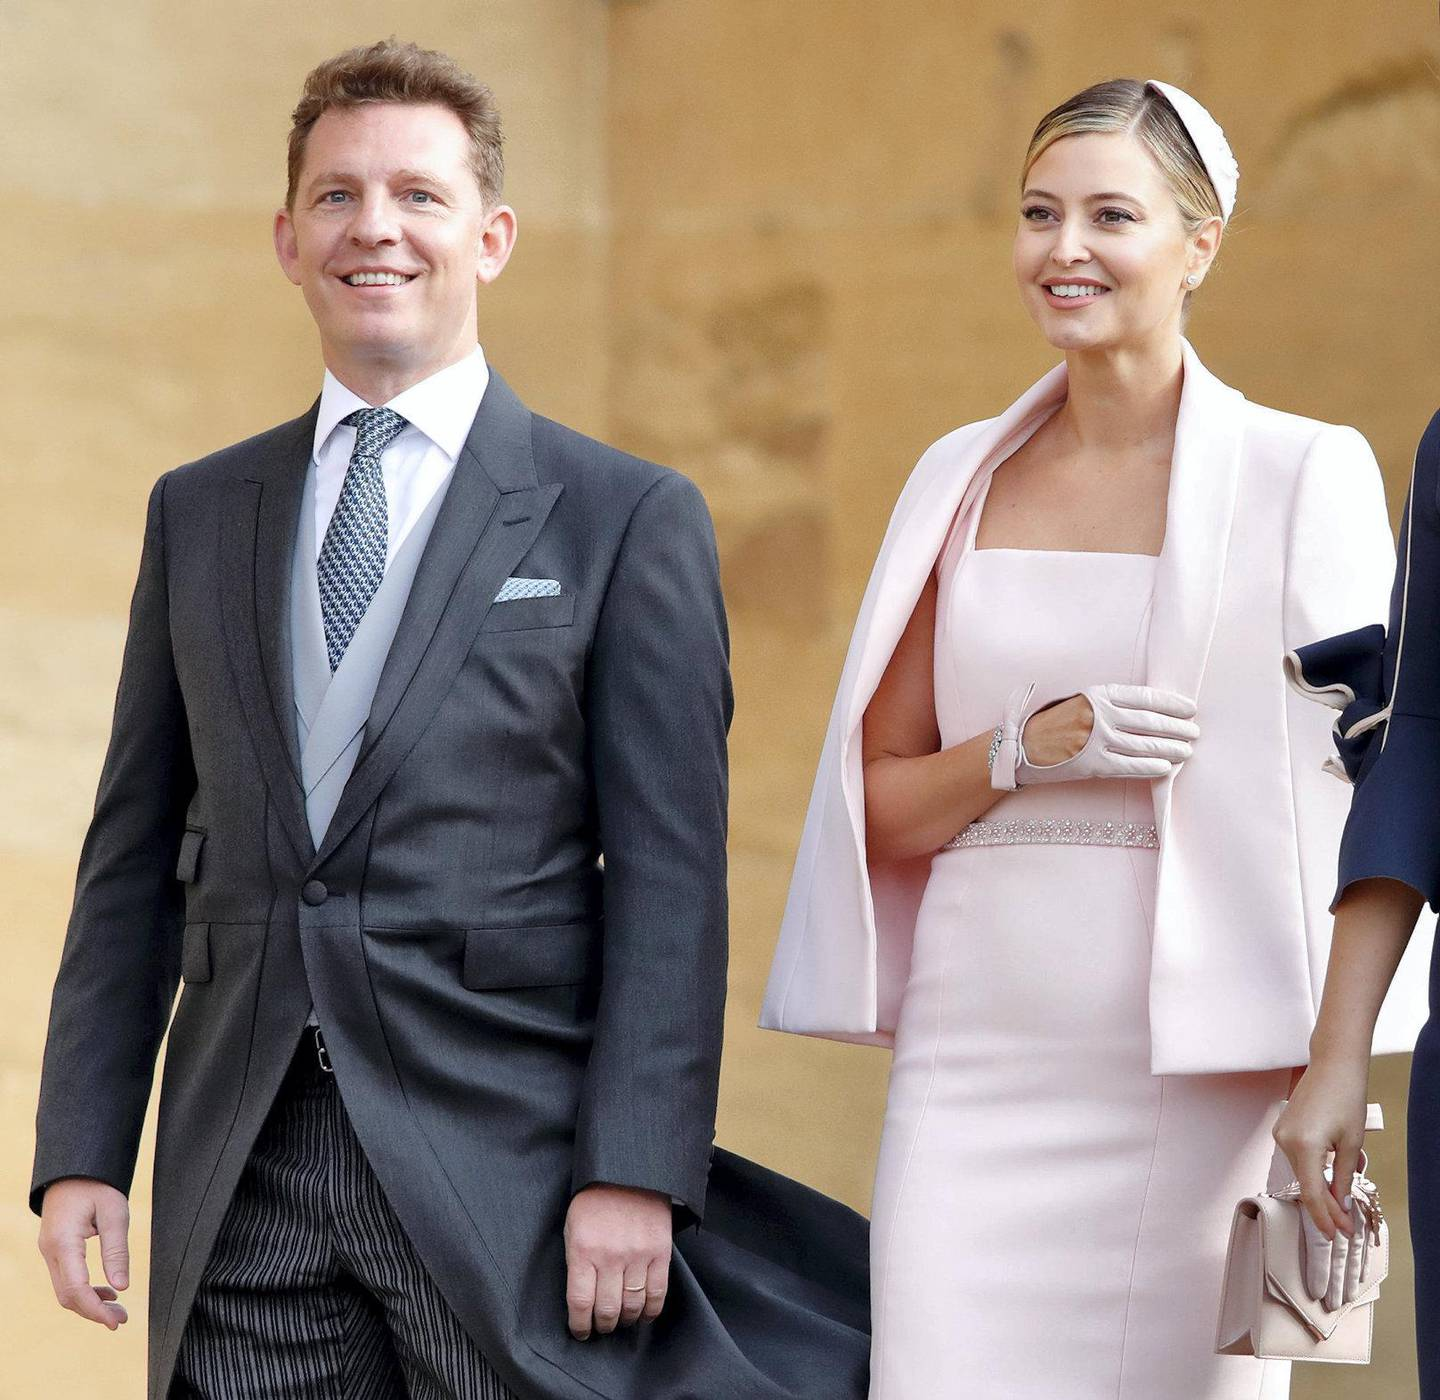 WINDSOR, UNITED KINGDOM - OCTOBER 12: (EMBARGOED FOR PUBLICATION IN UK NEWSPAPERS UNTIL 24 HOURS AFTER CREATE DATE AND TIME) Nick Candy and Holly Valance attend the wedding of Princess Eugenie of York and Jack Brooksbank at St George's Chapel on October 12, 2018 in Windsor, England. (Photo by Max Mumby/Indigo/Getty Images)